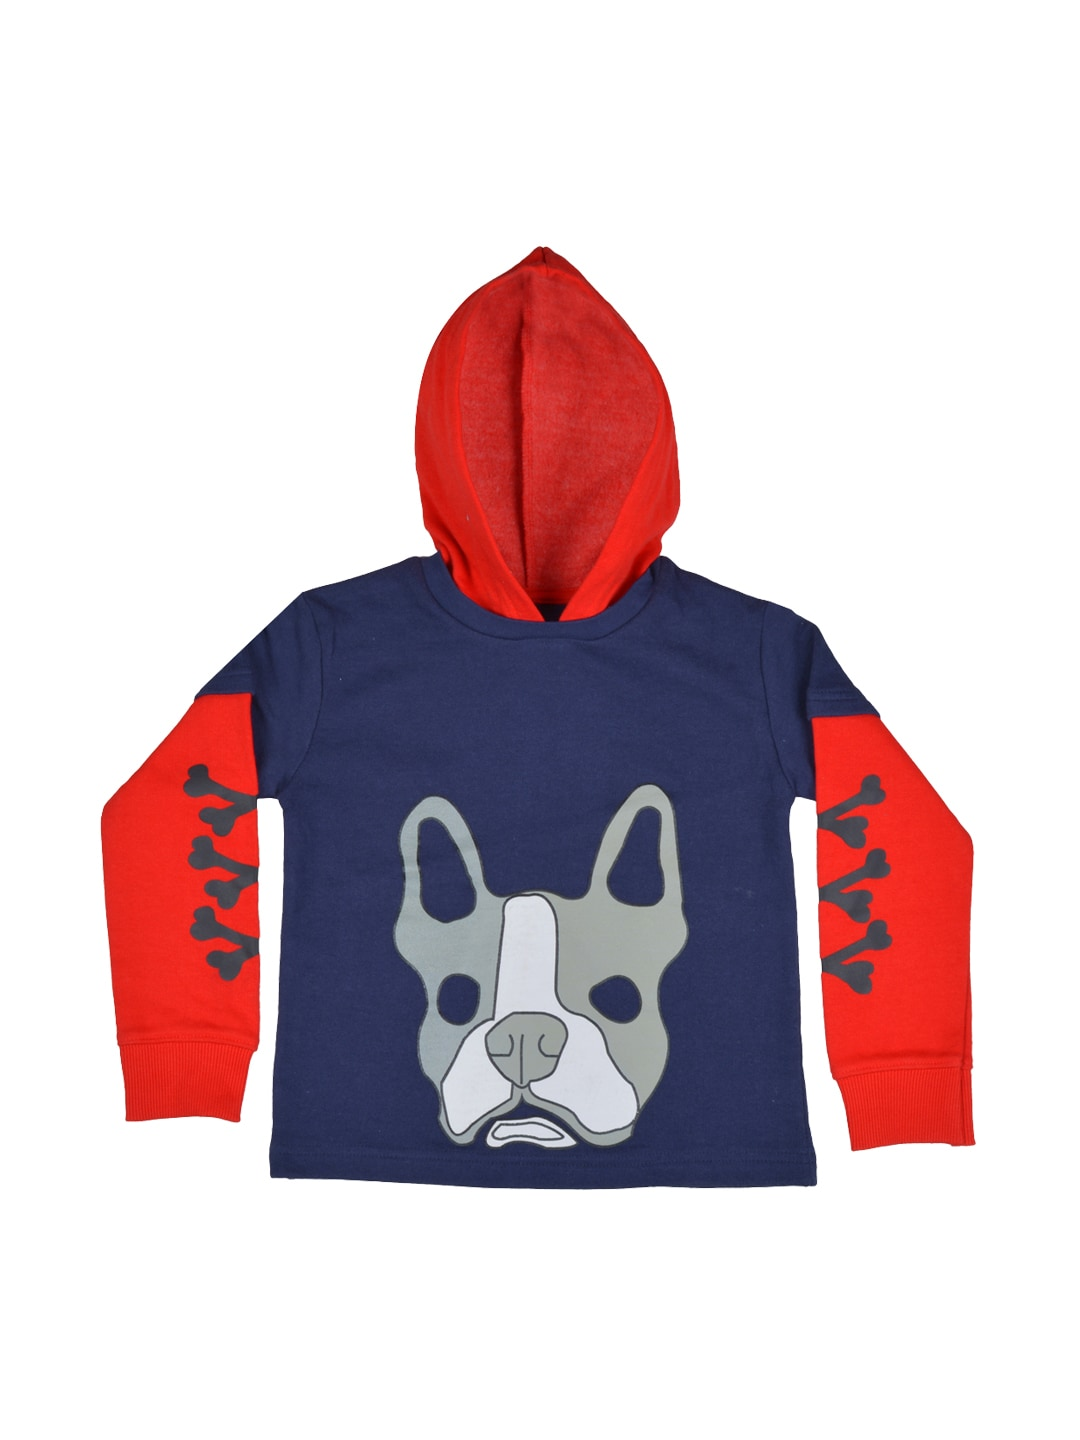 GKIDZ Boys Navy Hooded Printed Sweatshirt